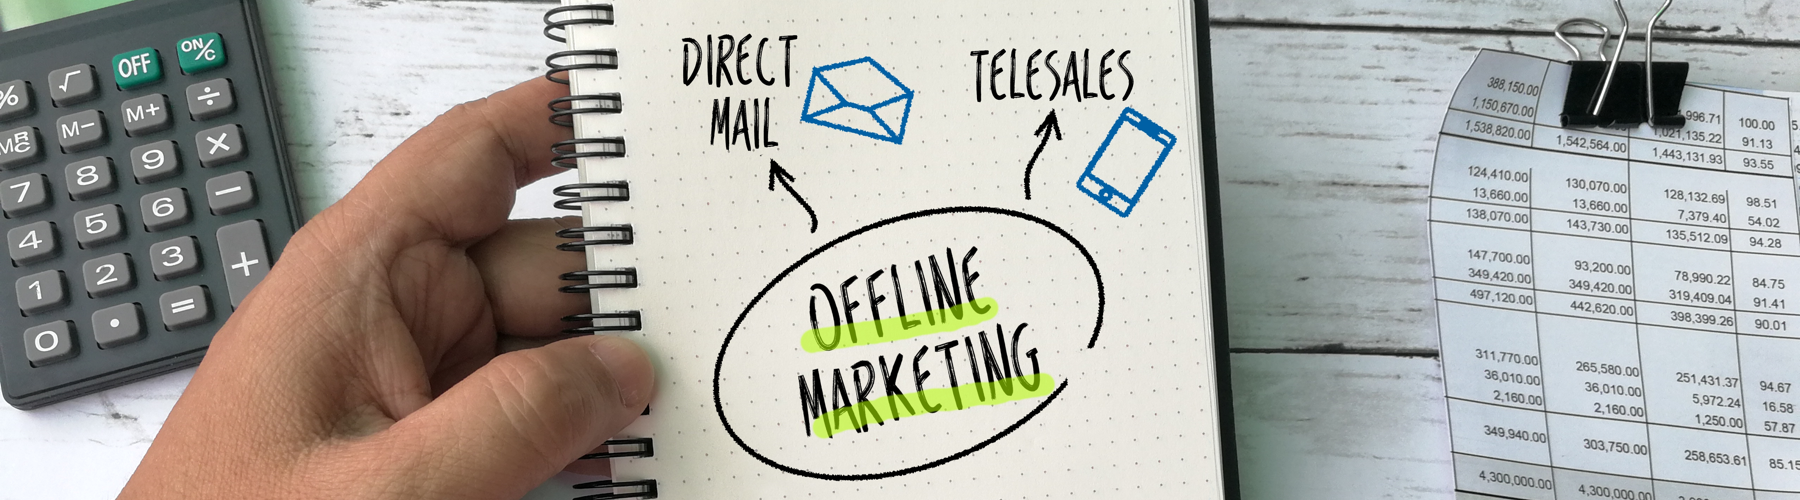 Why Offline Marketing is Perfect for the Holiday Season